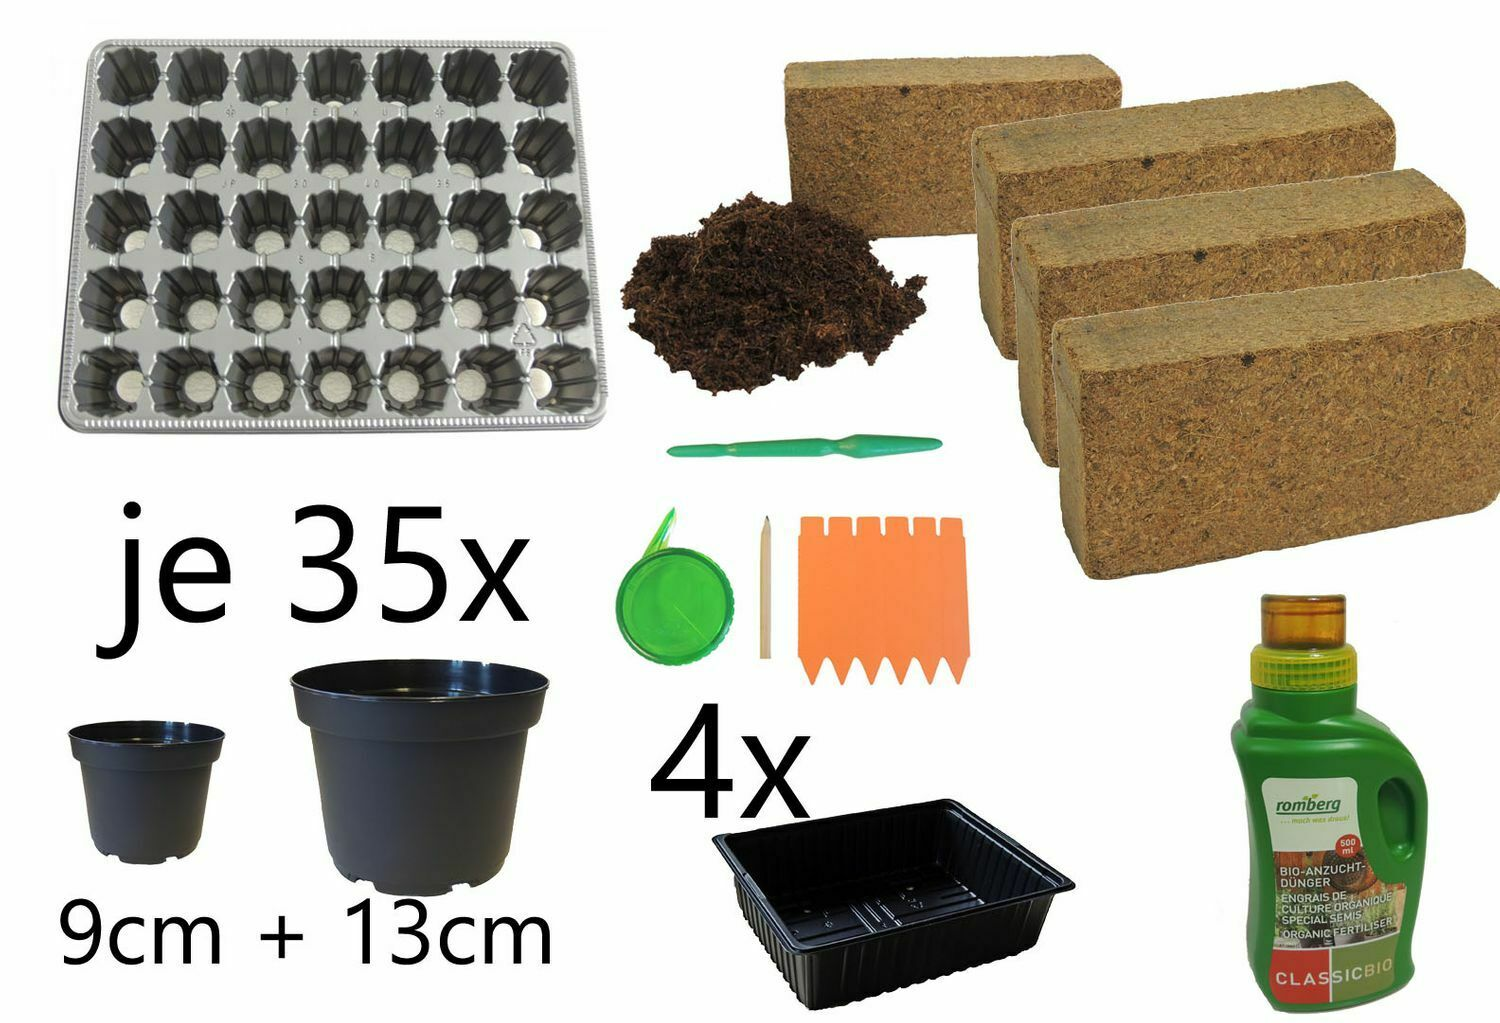 Breeding Sowing And Pikierset 89-Teilig For 35 Plants Tomatoes Chili Paprika